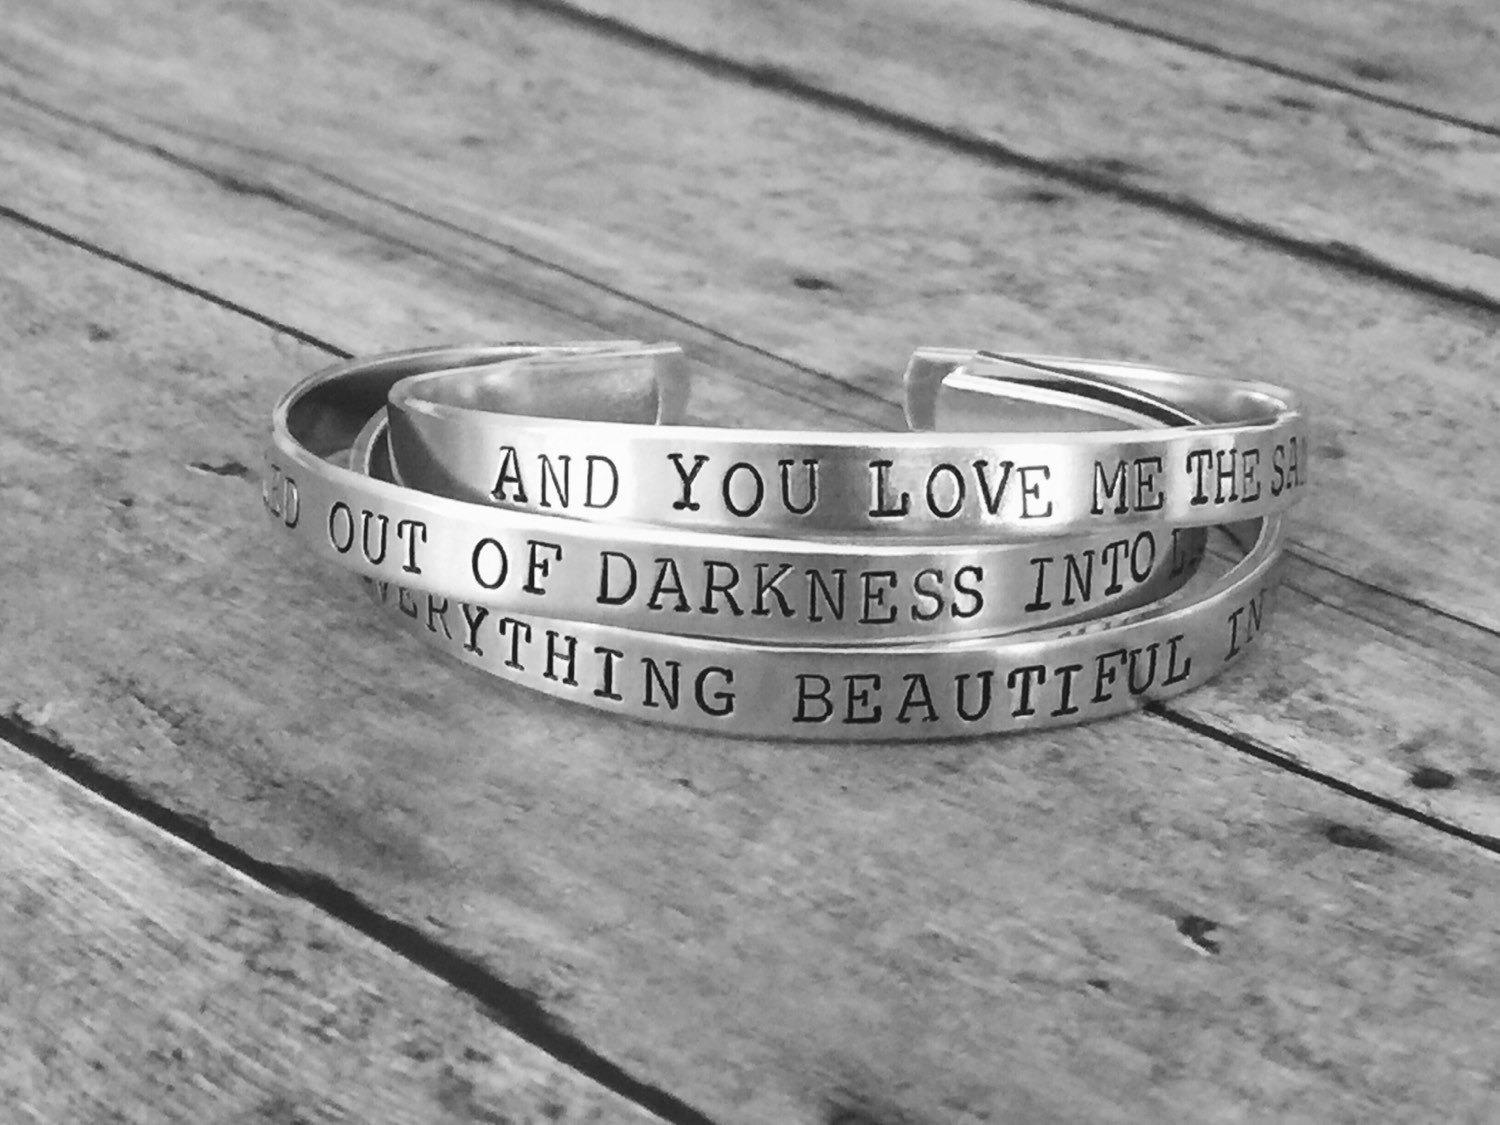 cuff bracelets shine rubytan light let for stamped from gold your delicate steel gift titanium bangle inspirational product women bracelet